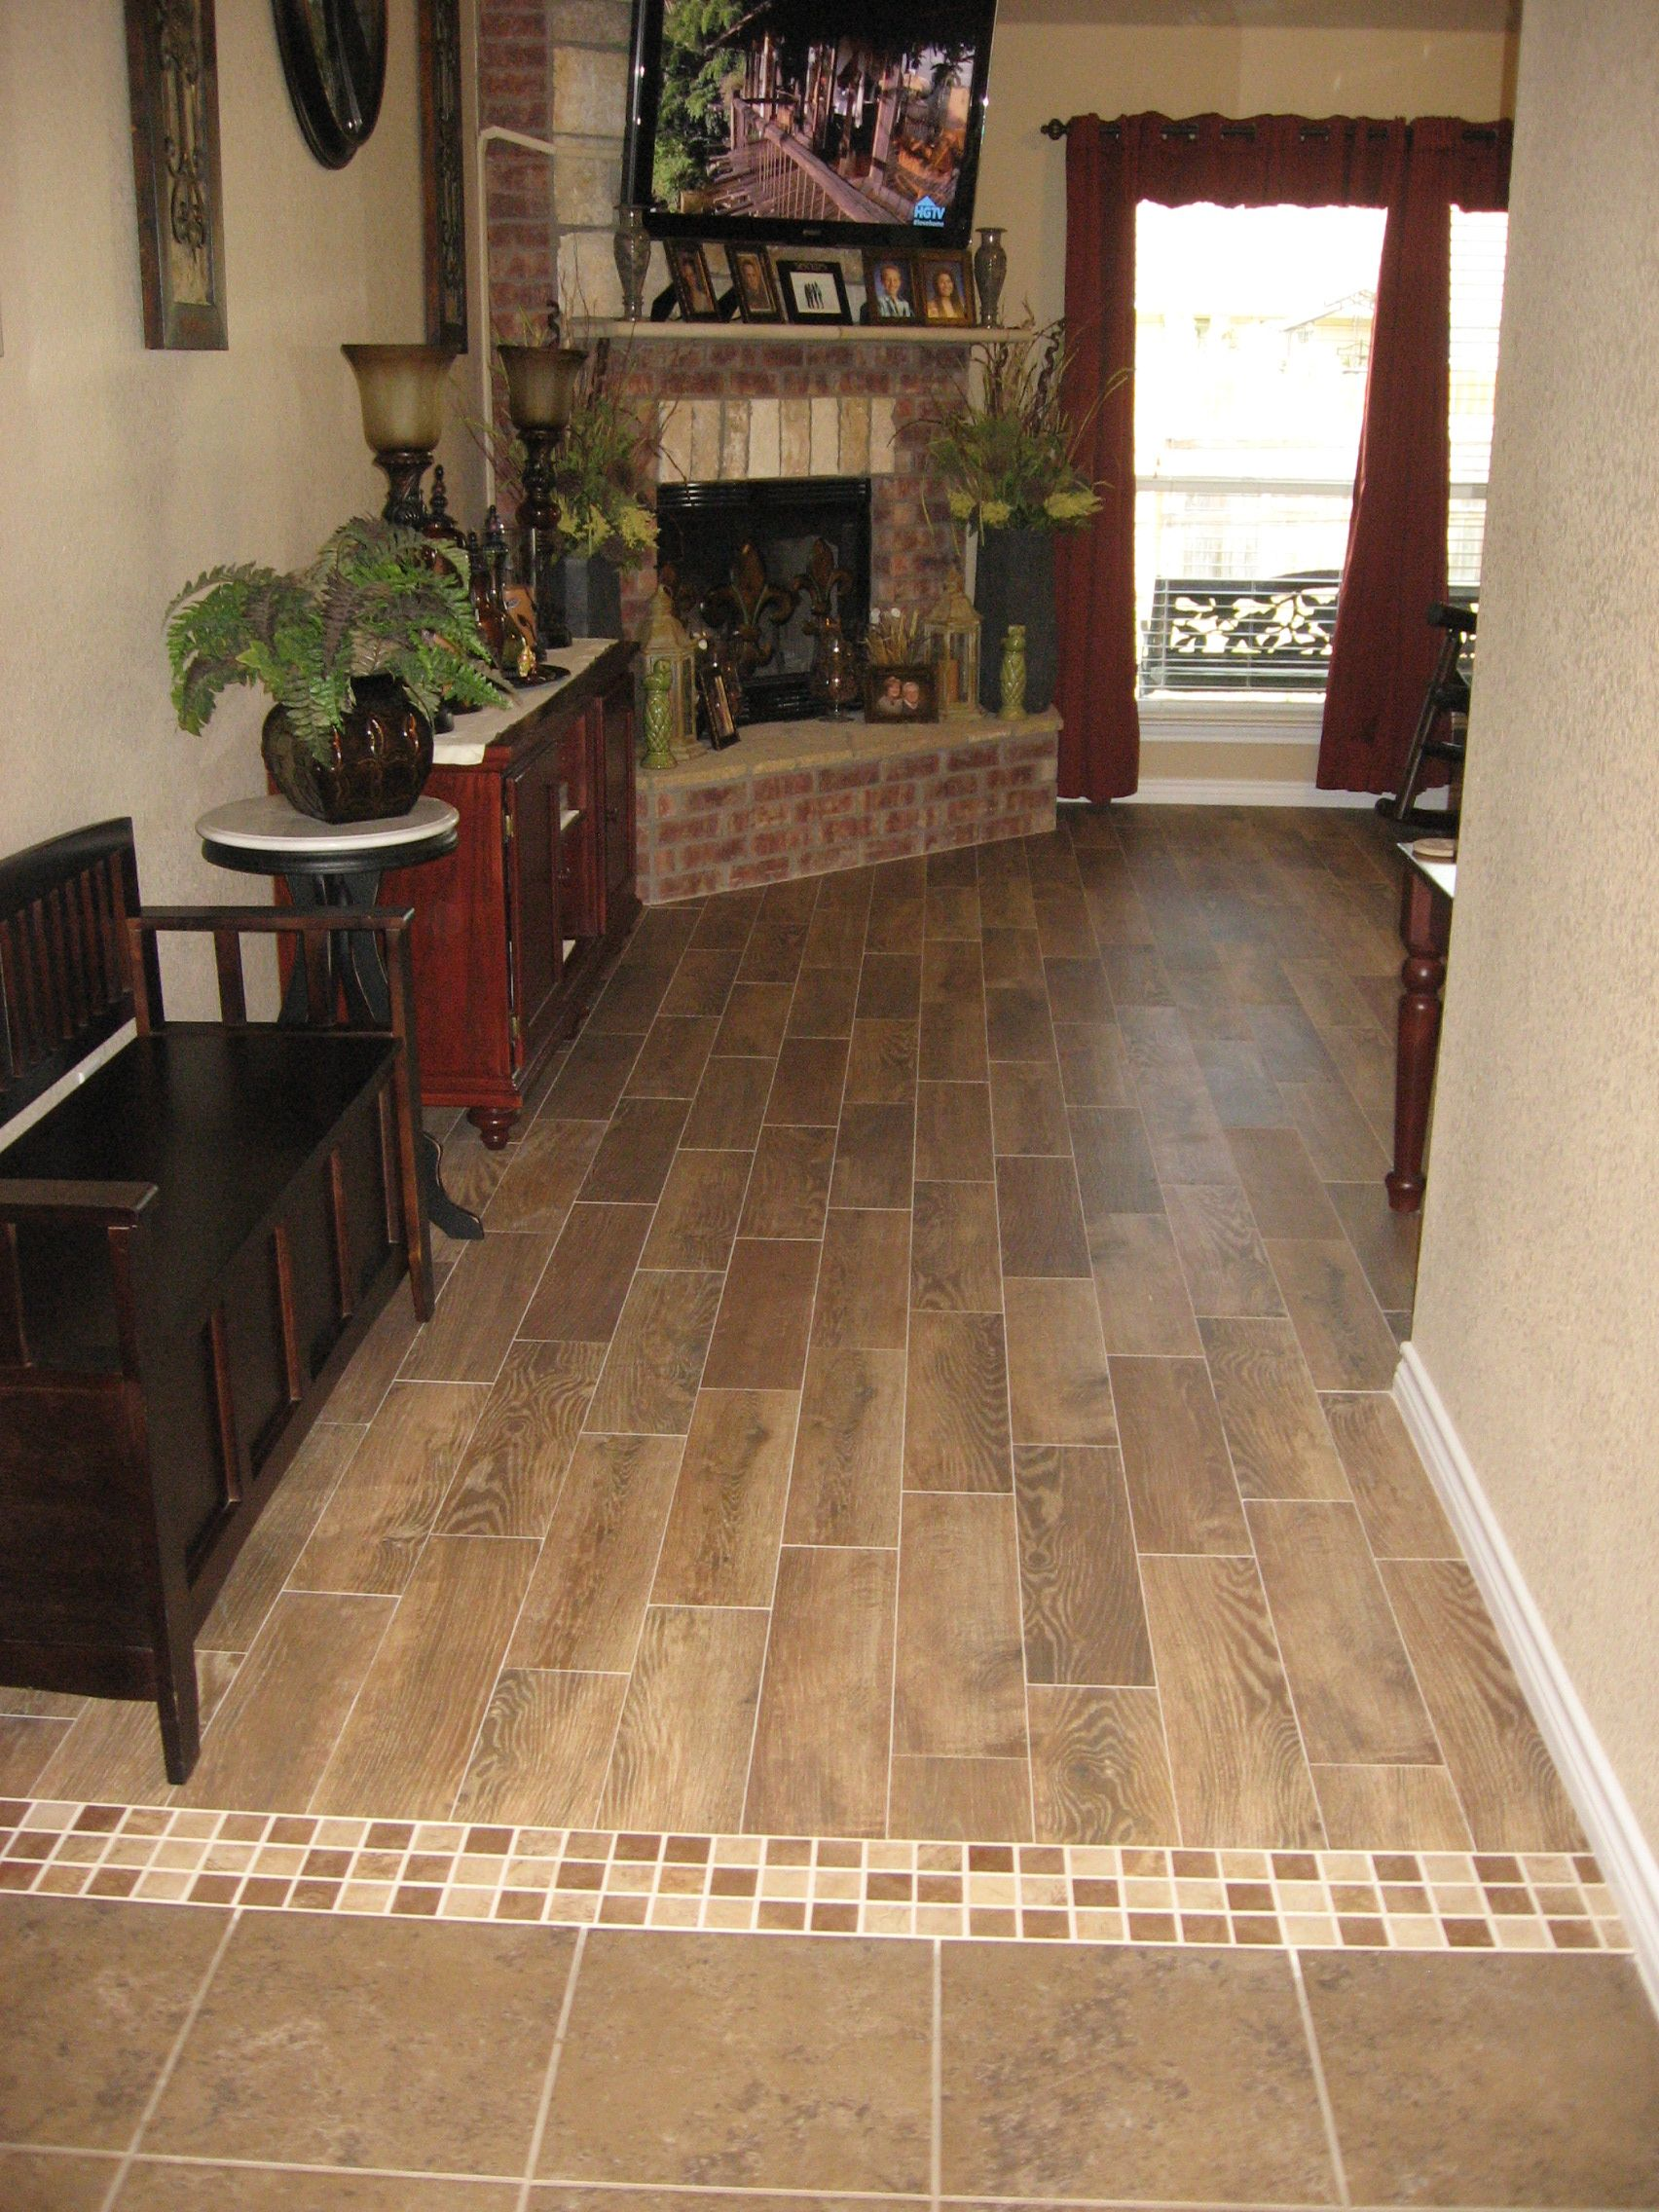 Transition with wood plank tile pinteres transition with wood plank tile more dailygadgetfo Images